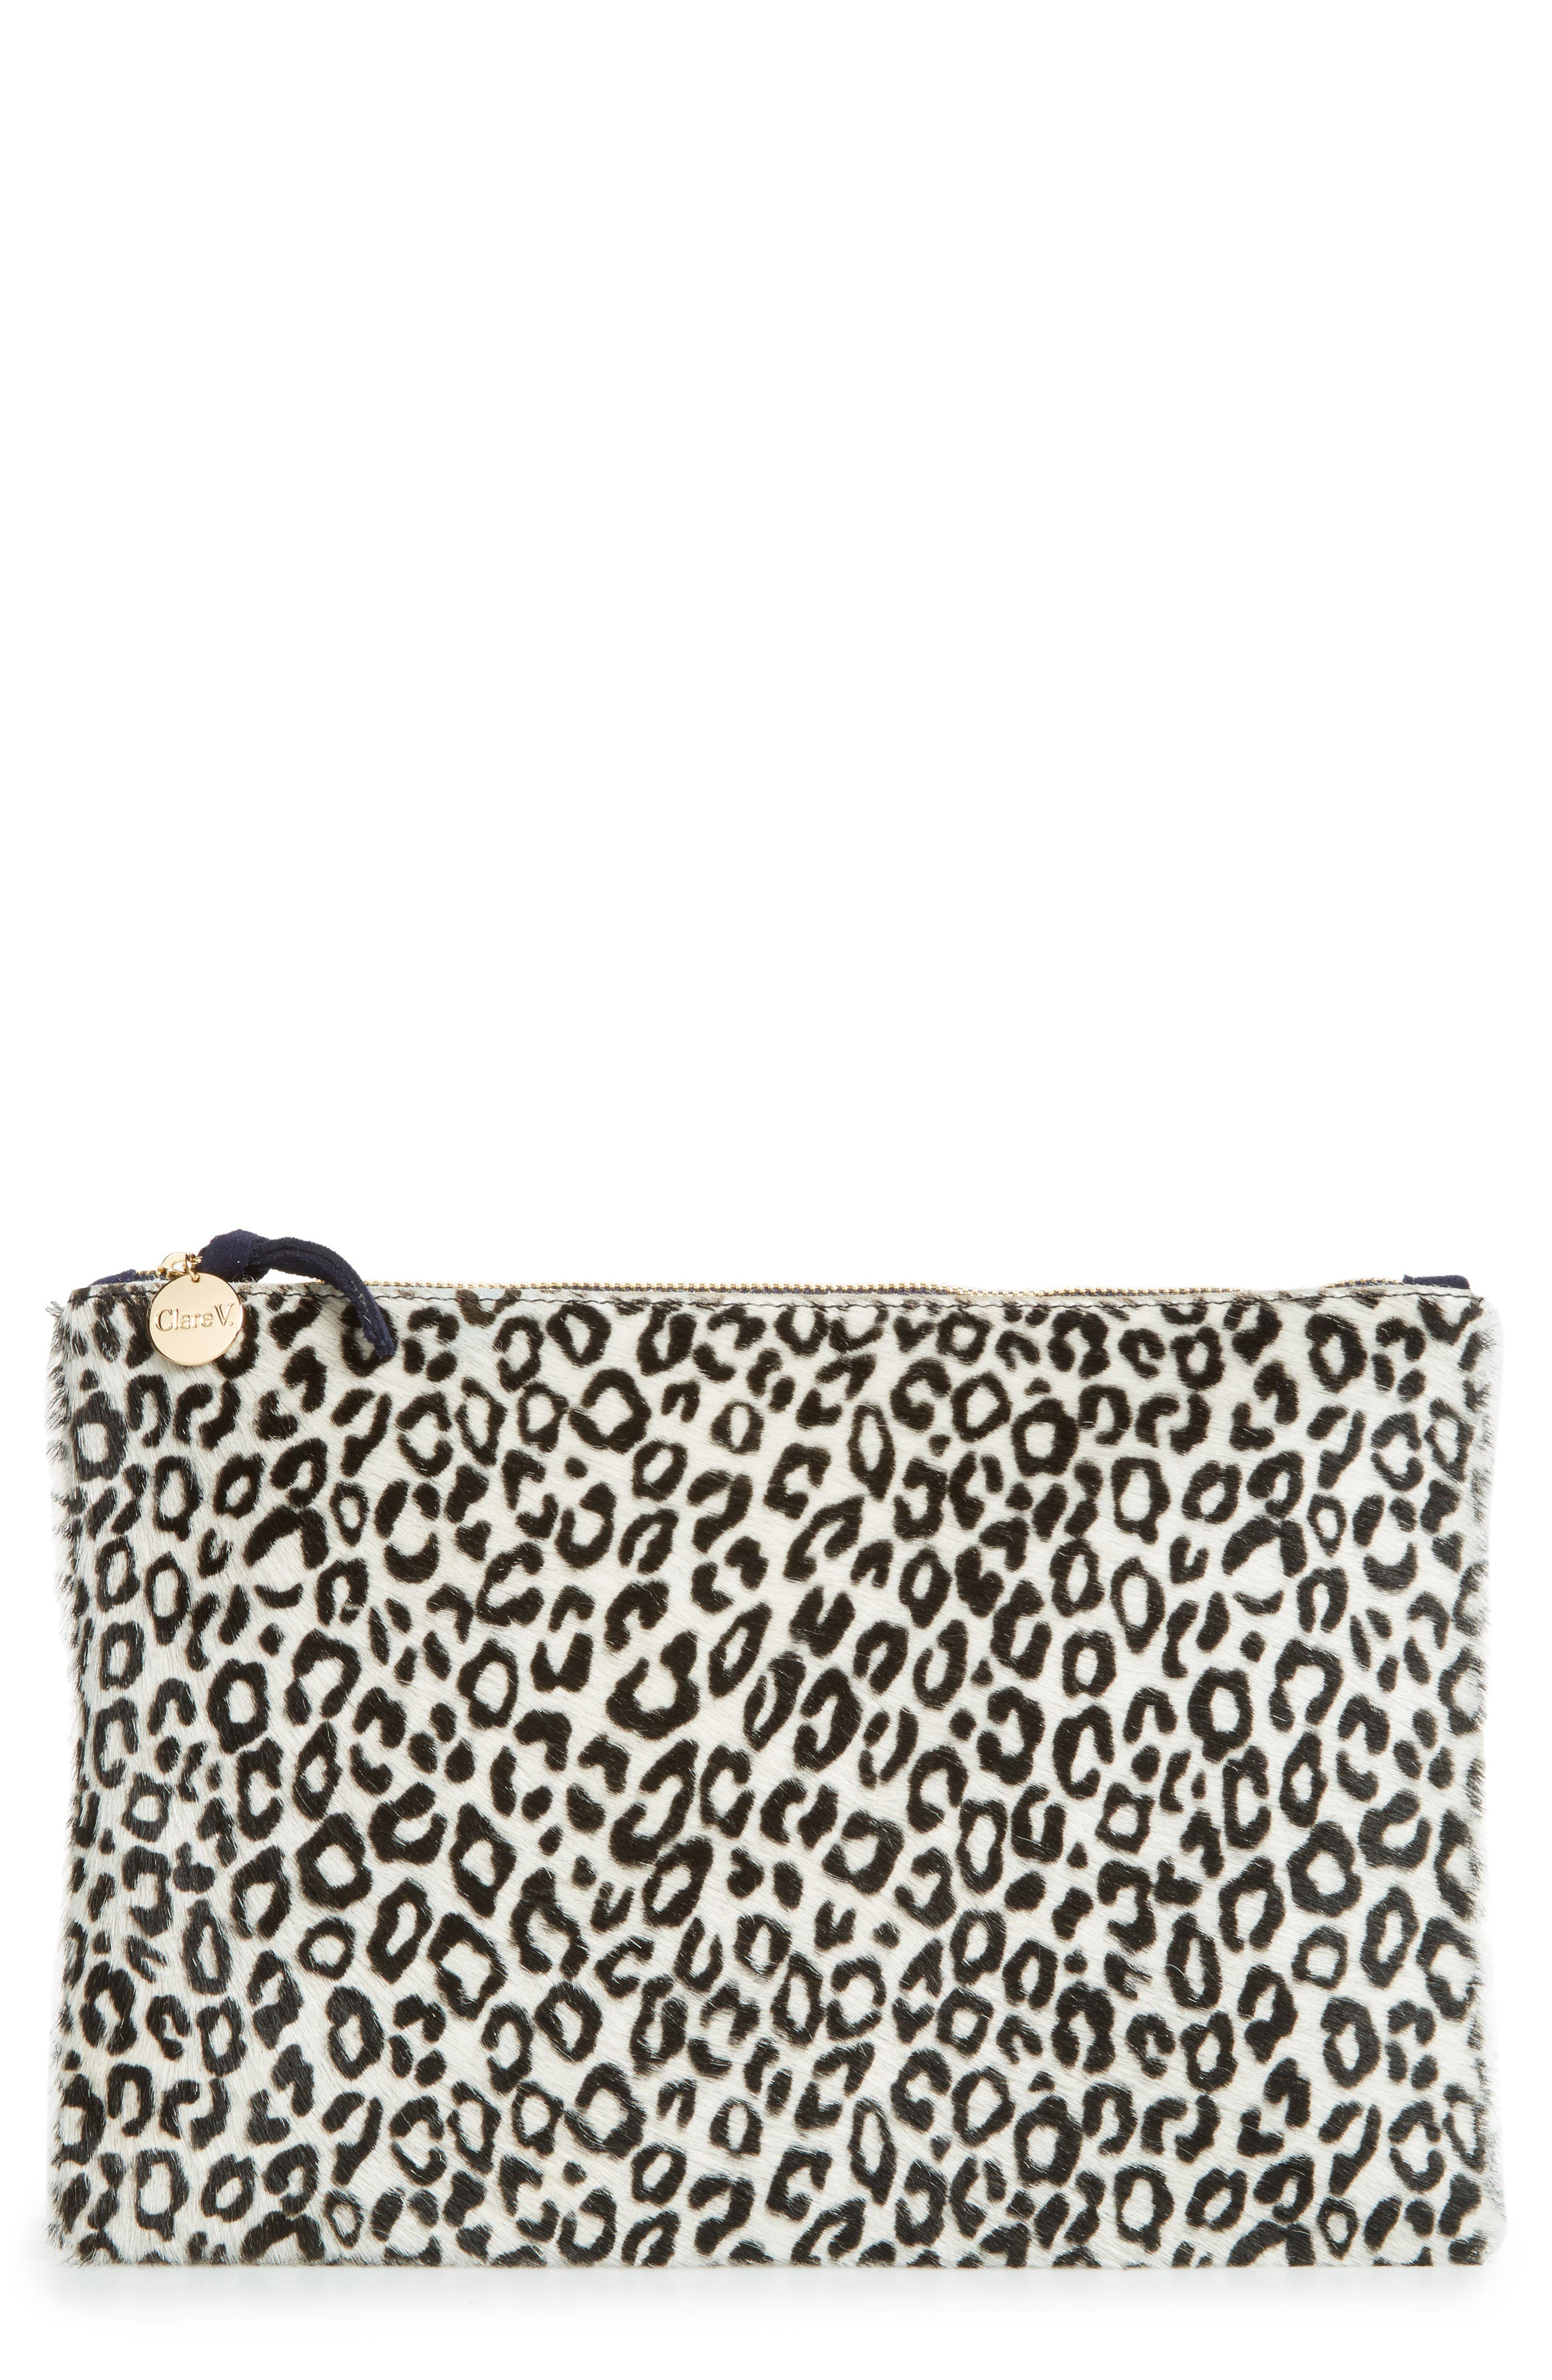 Alternate Image 1 Selected - Clare V. Star Ocelot Print Genuine Calf Hair Flat Clutch